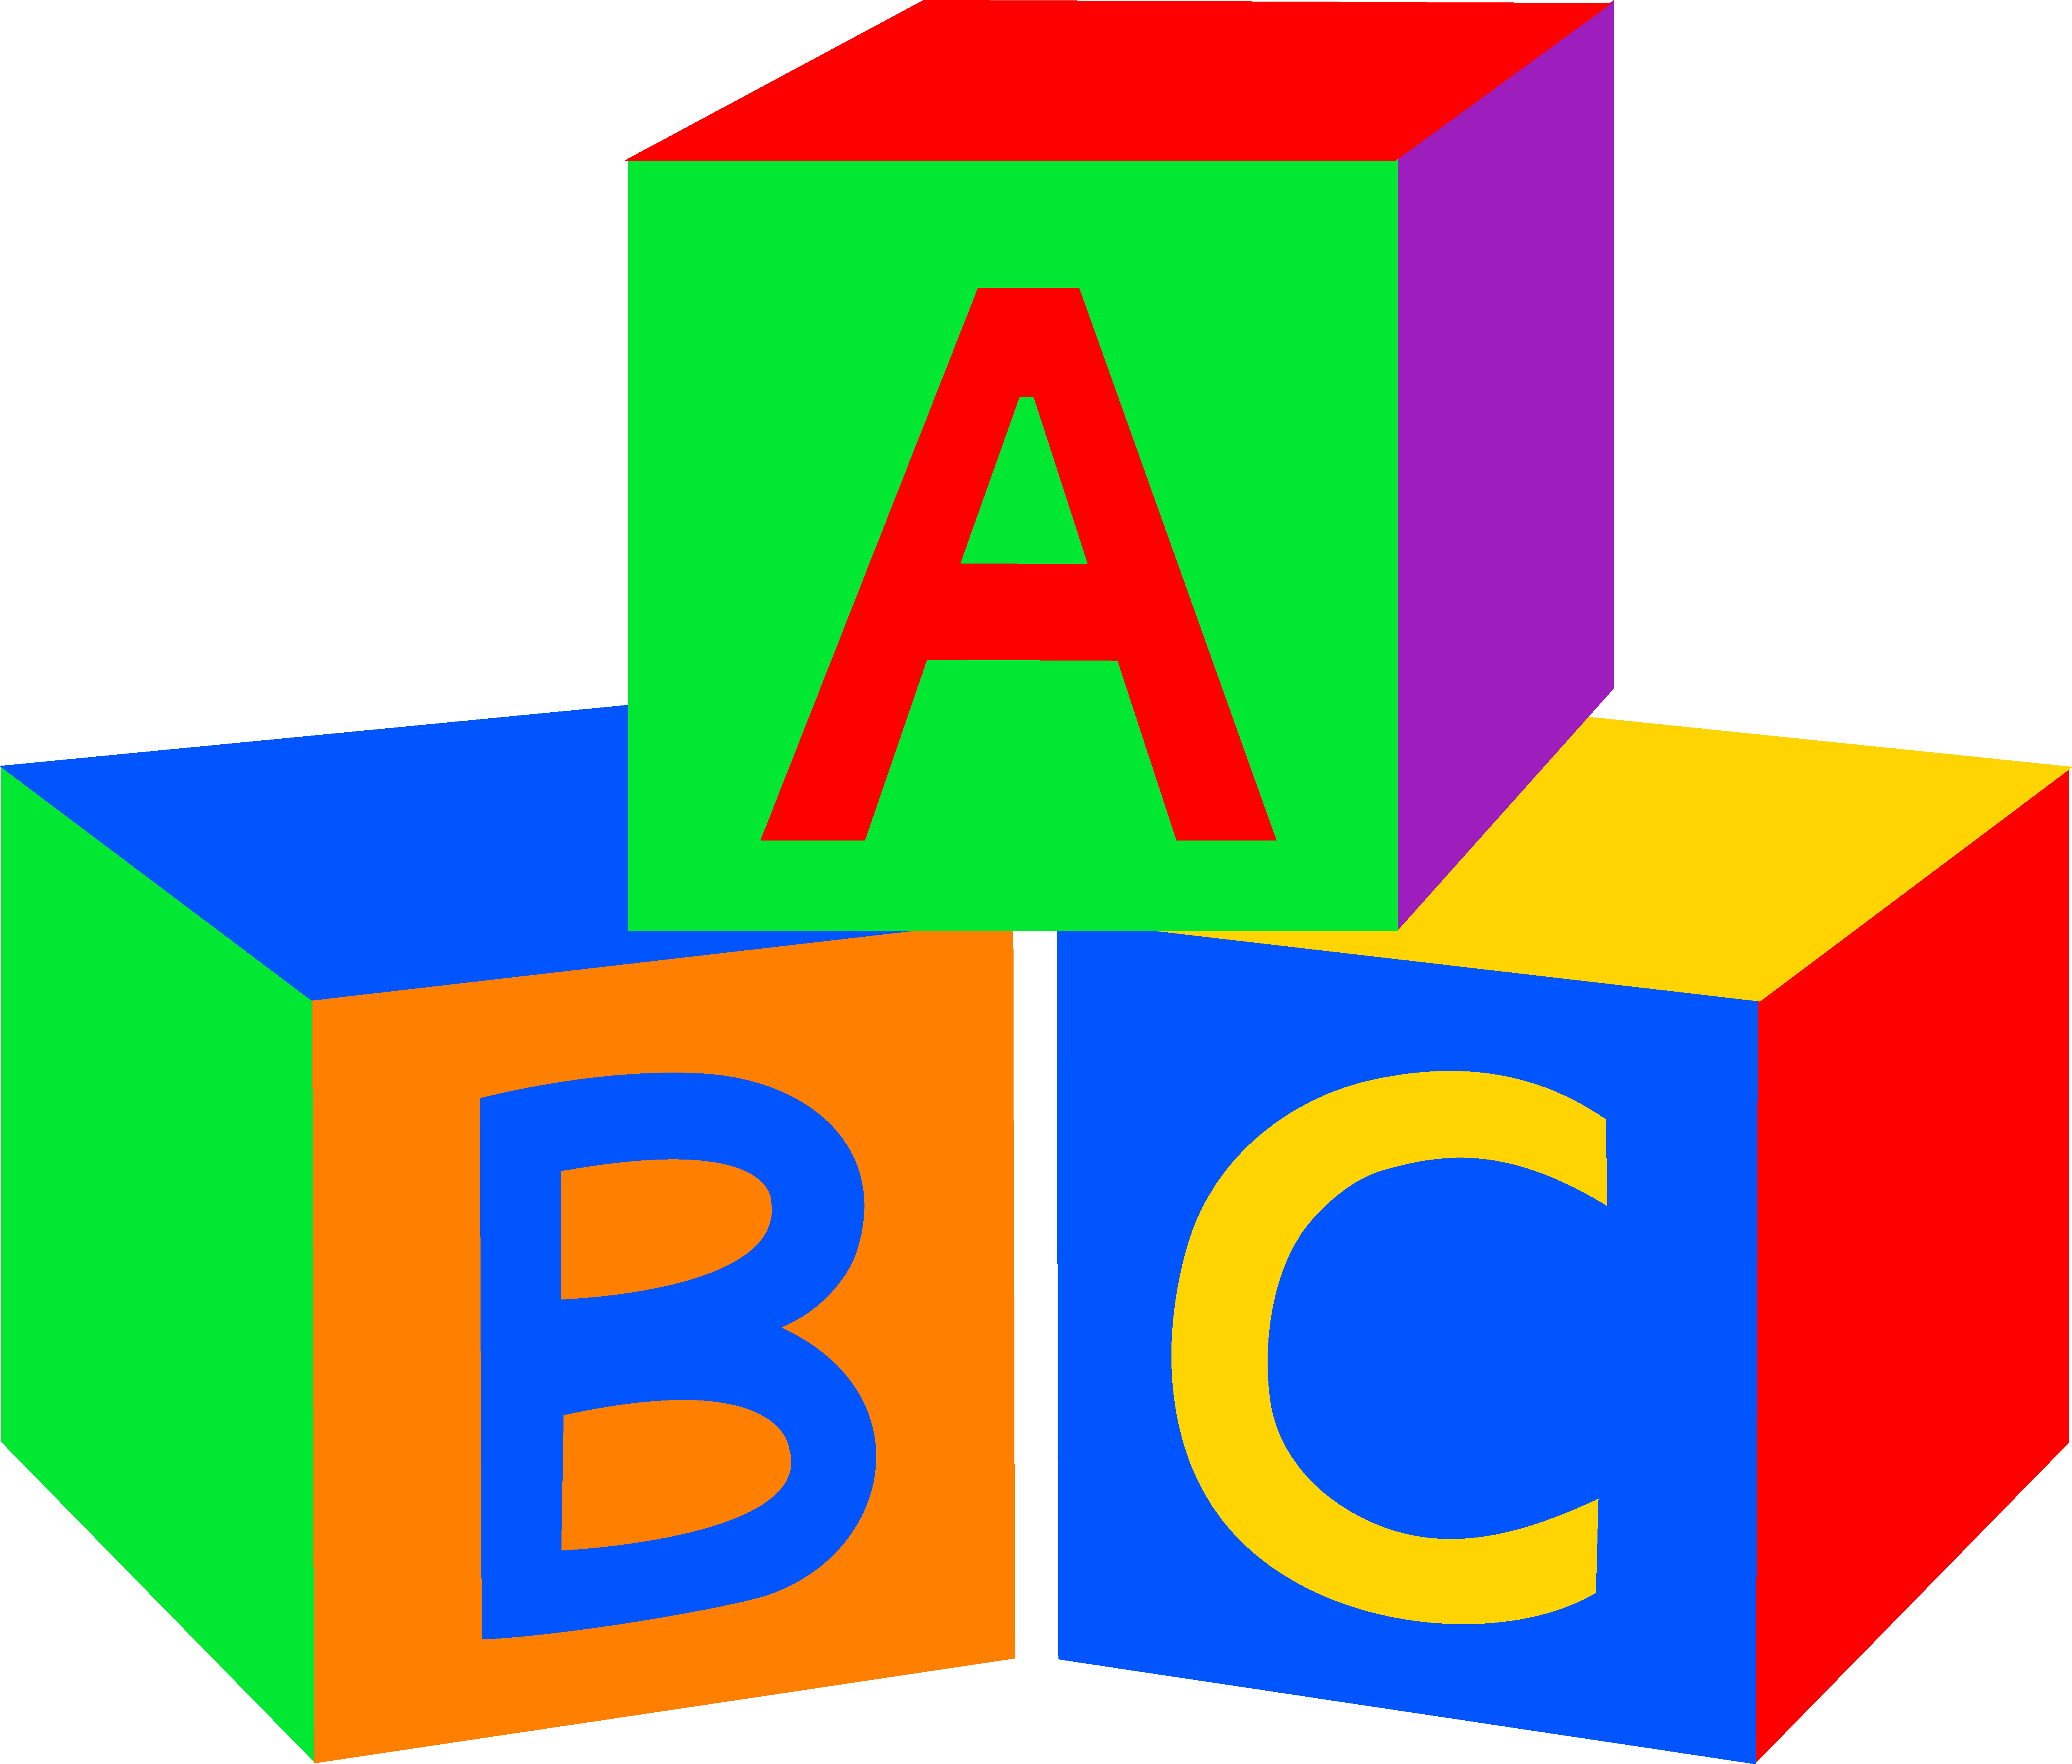 Abc clipart free download. Alphabet blocks clip art